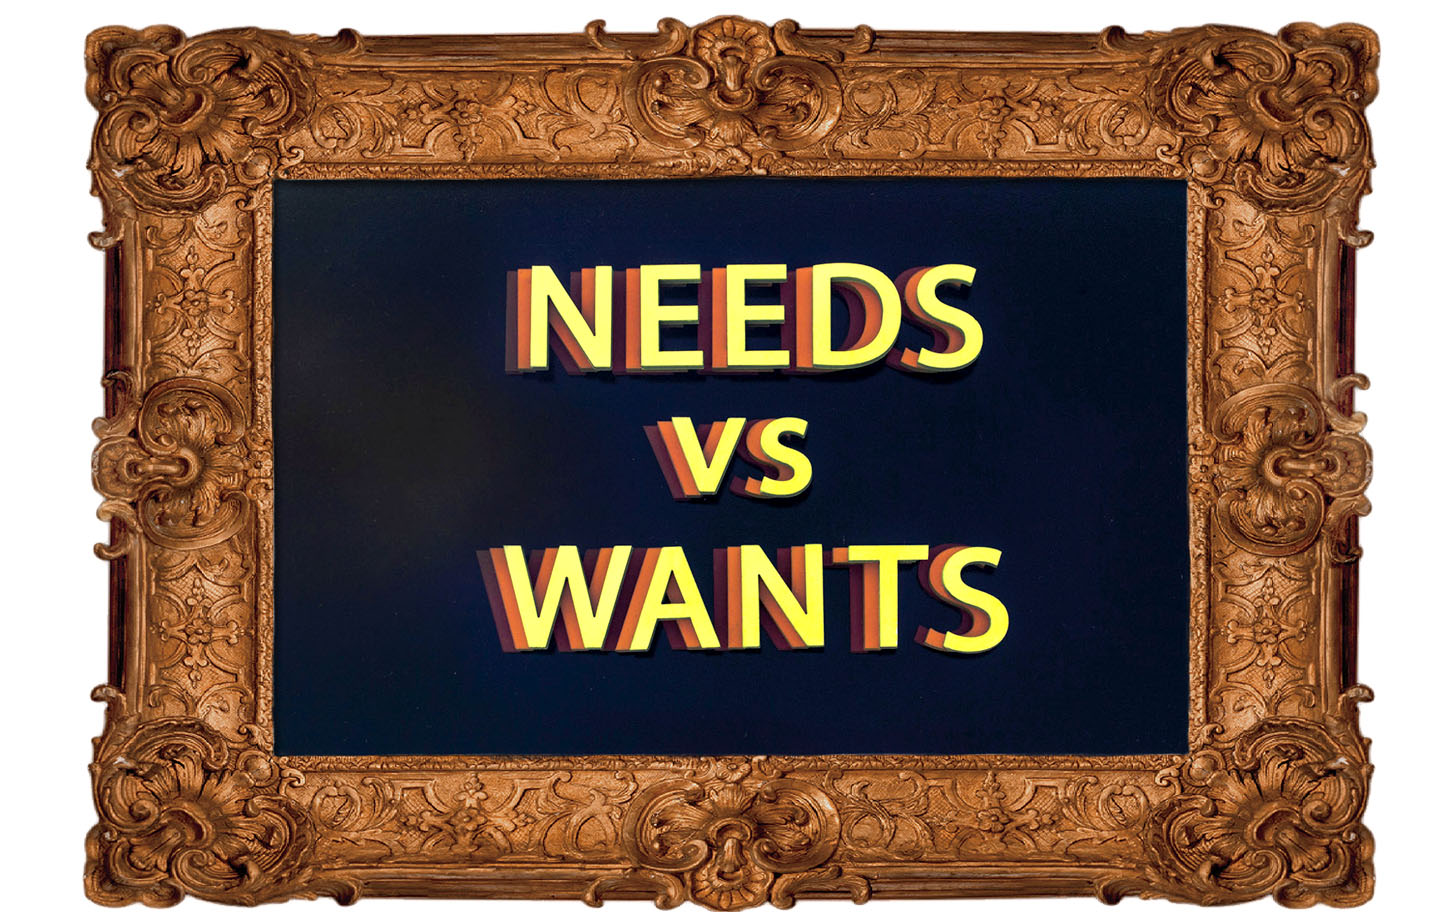 Needs vs Wants.jpg